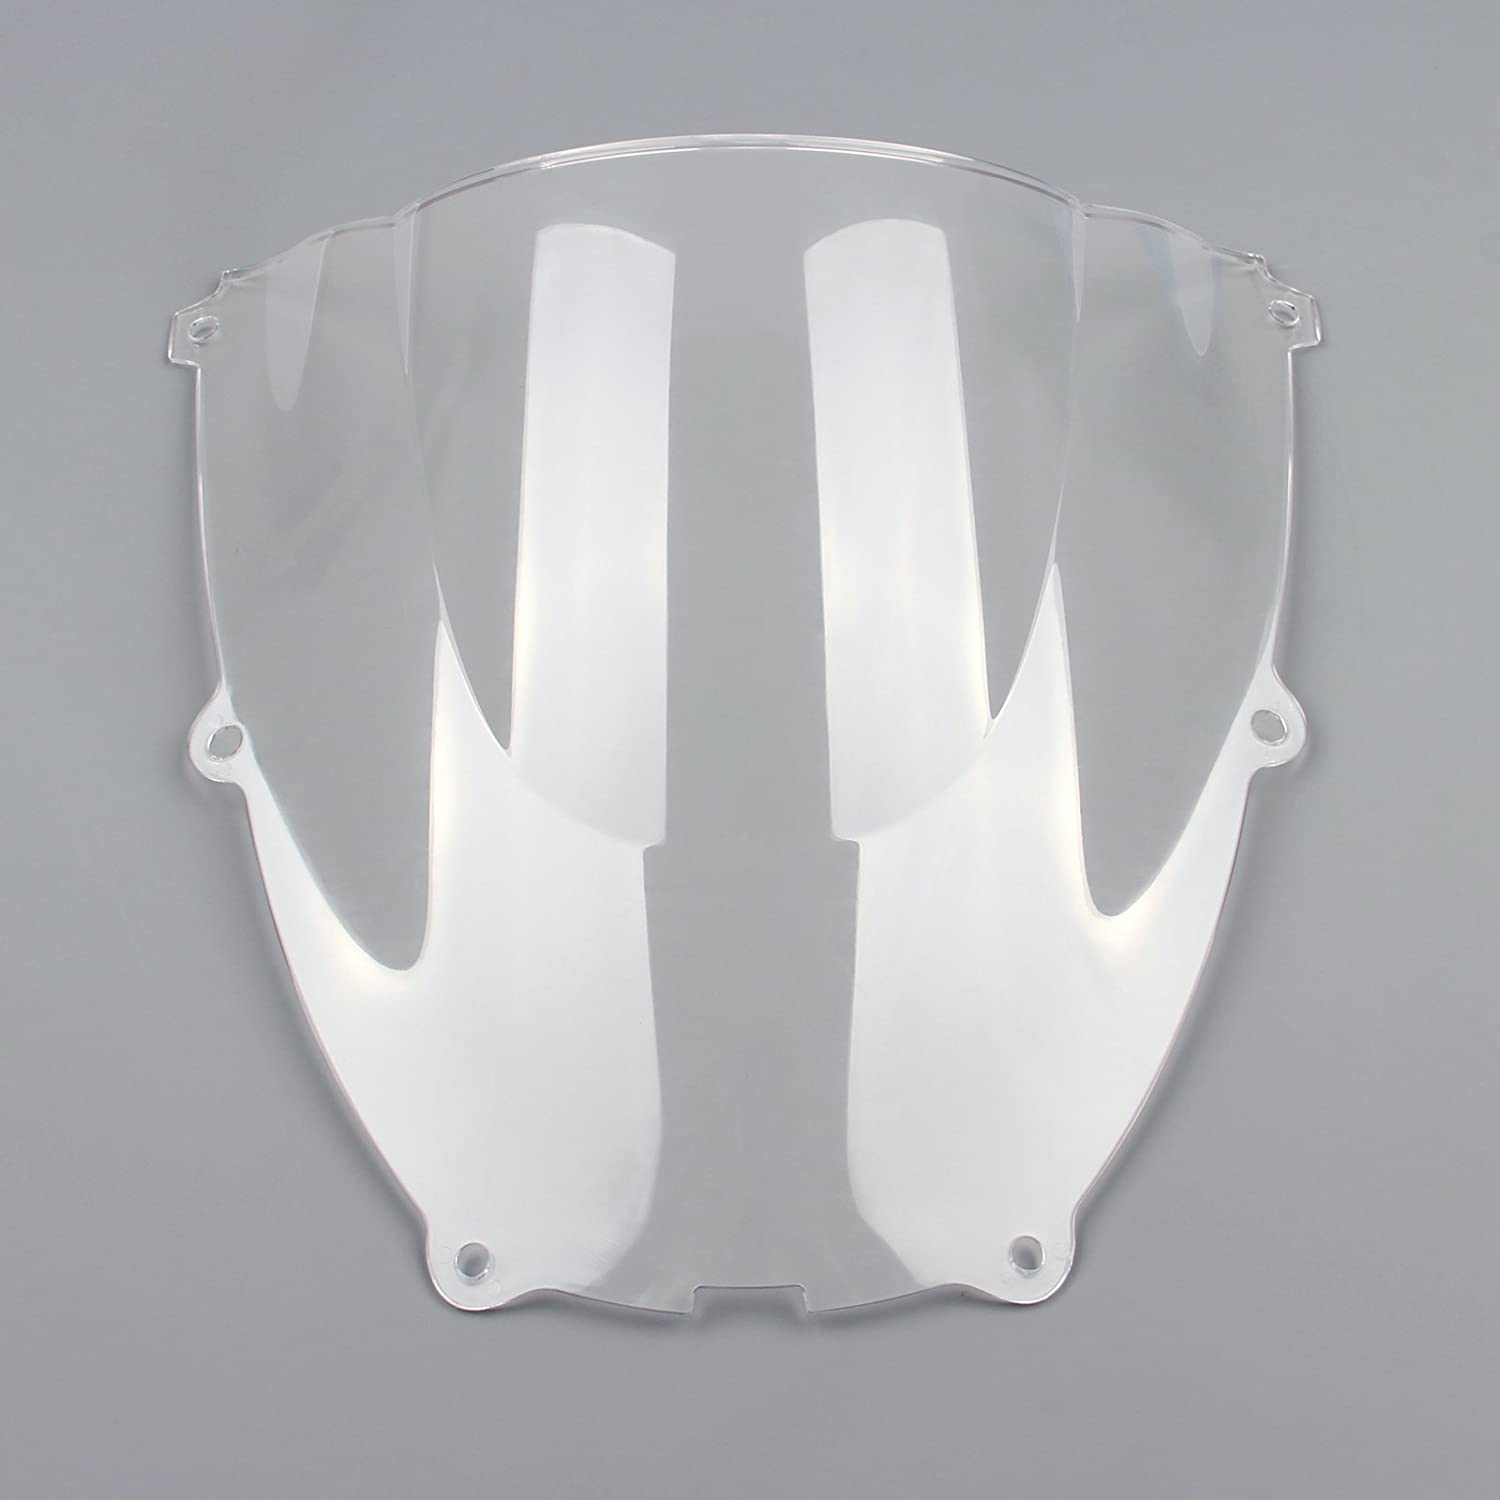 Areyourshop Windshield WindScreen Double Max 69% OFF For Bubble YZF60 Yamaha Seattle Mall